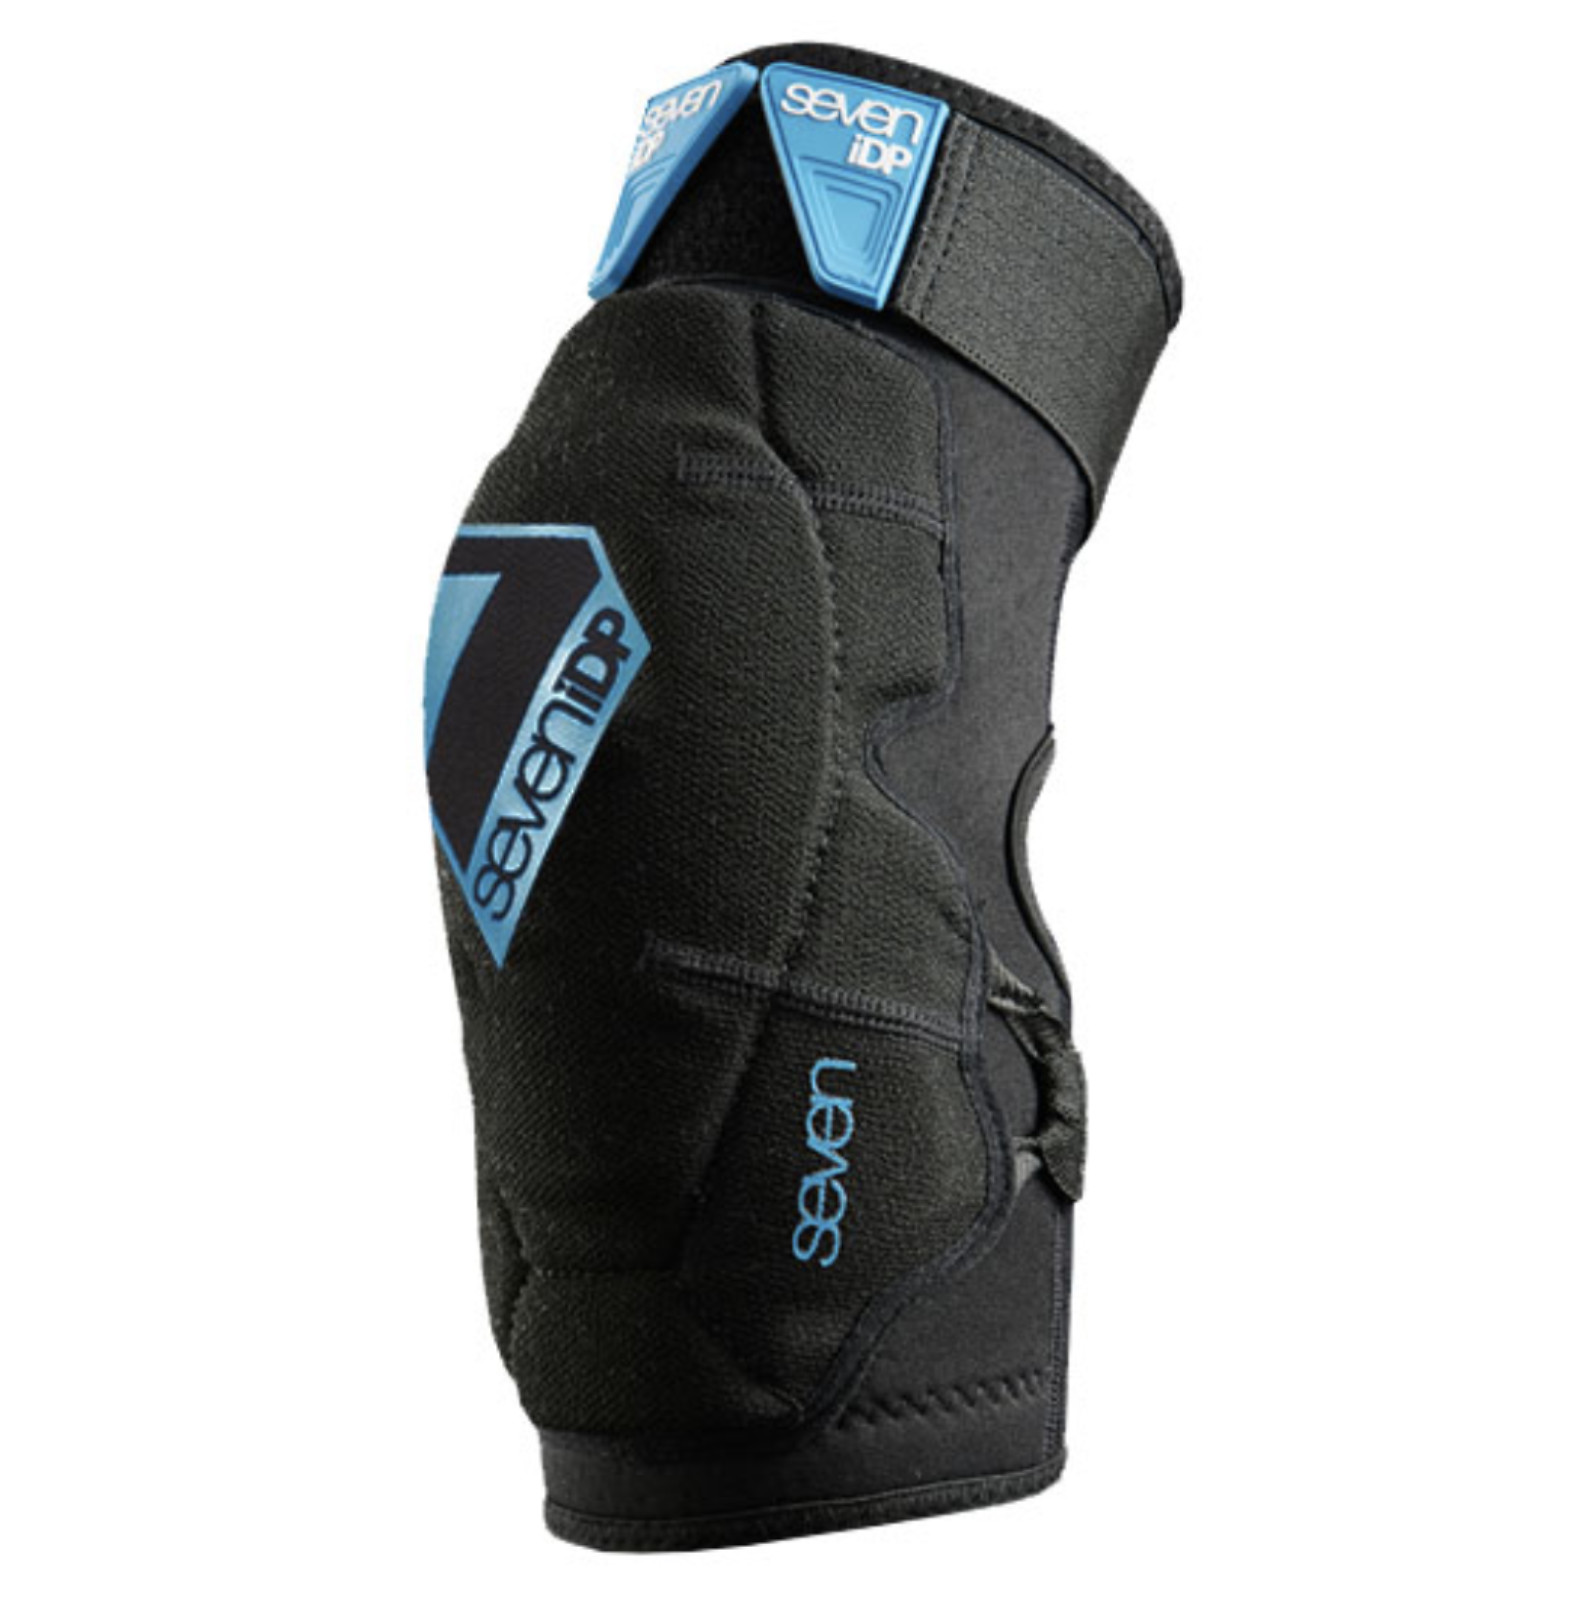 7iDP Flex Elbow Pad